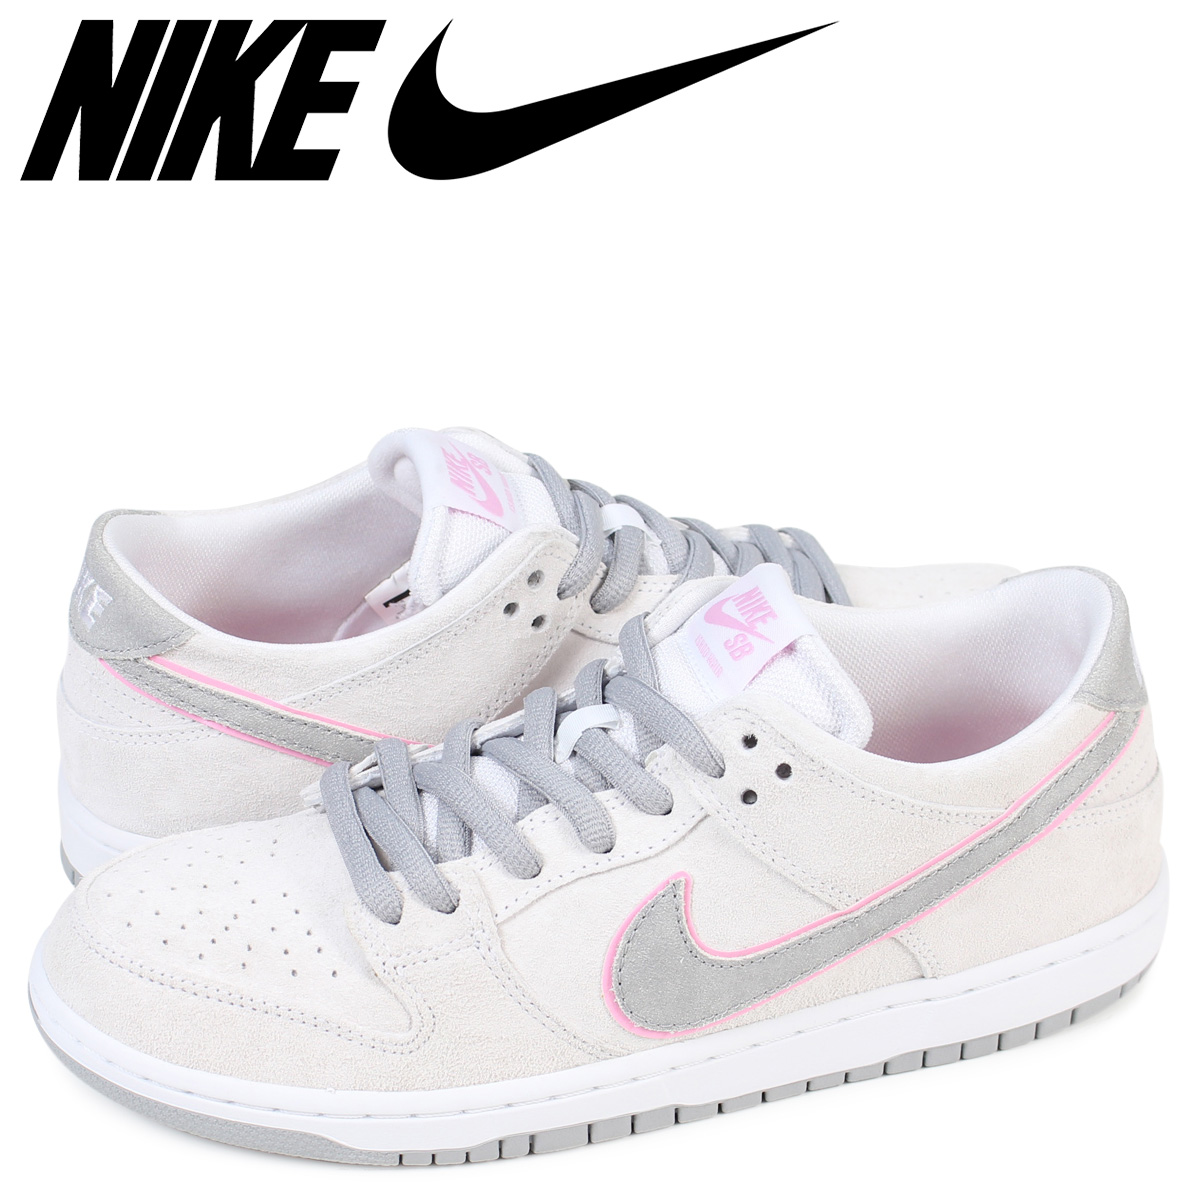 b402301f05c1 Whats up Sports  NIKE SB ZOOM DUNK LOW PRO IW Nike dunk low sneakers ...